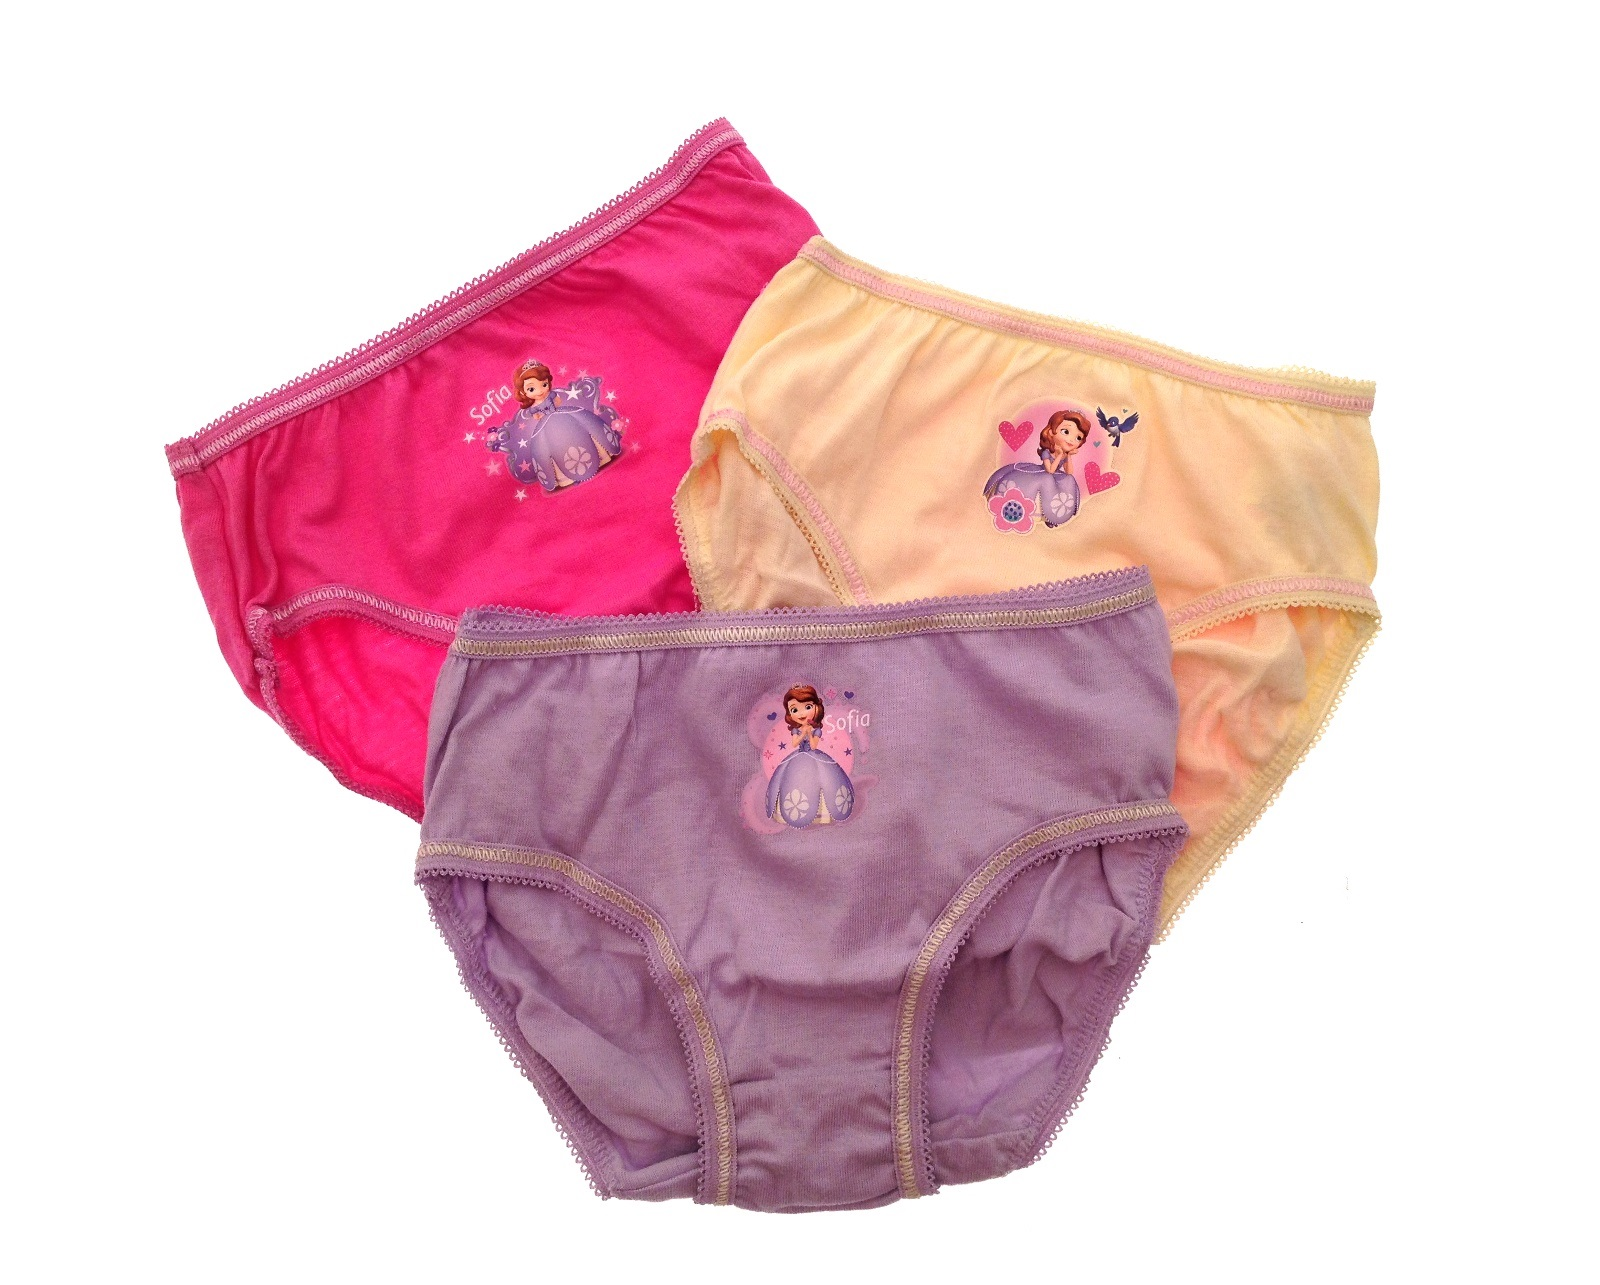 Underwear in the style of Disney princesses caused a flurry of indignation 76